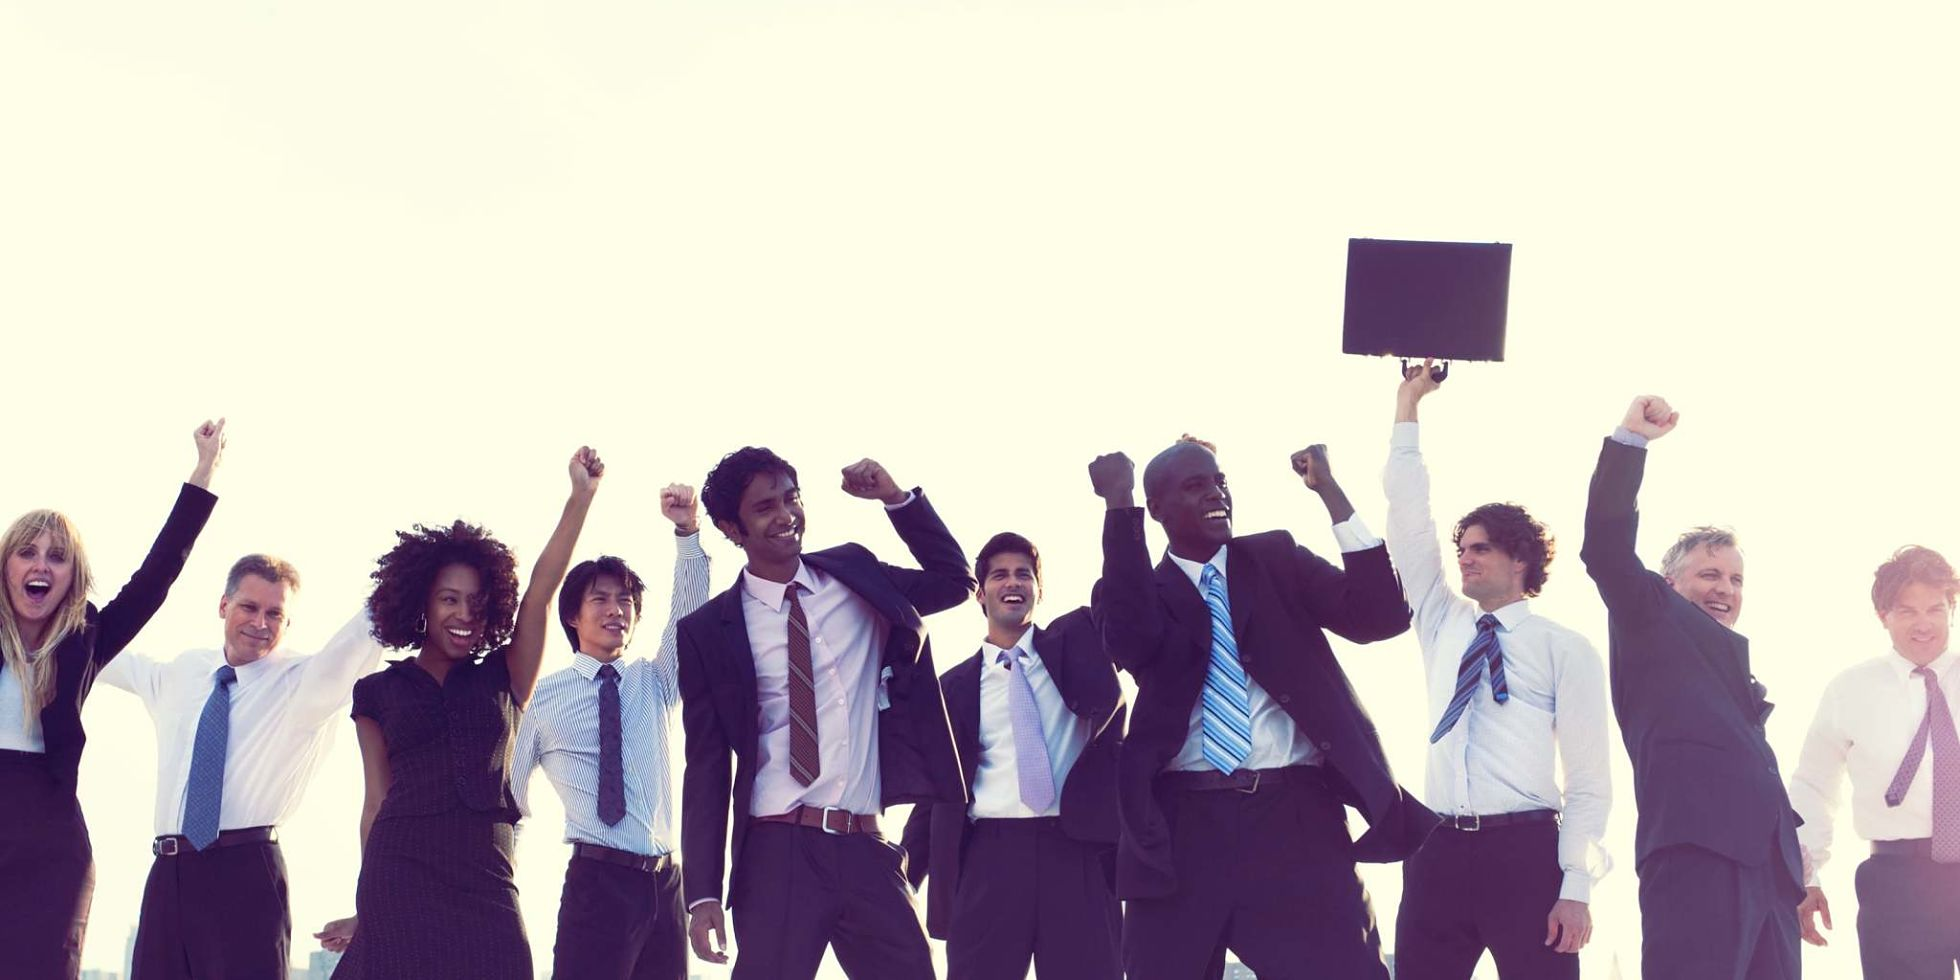 The Team creative brand and communications agency. Why is employee engagement important